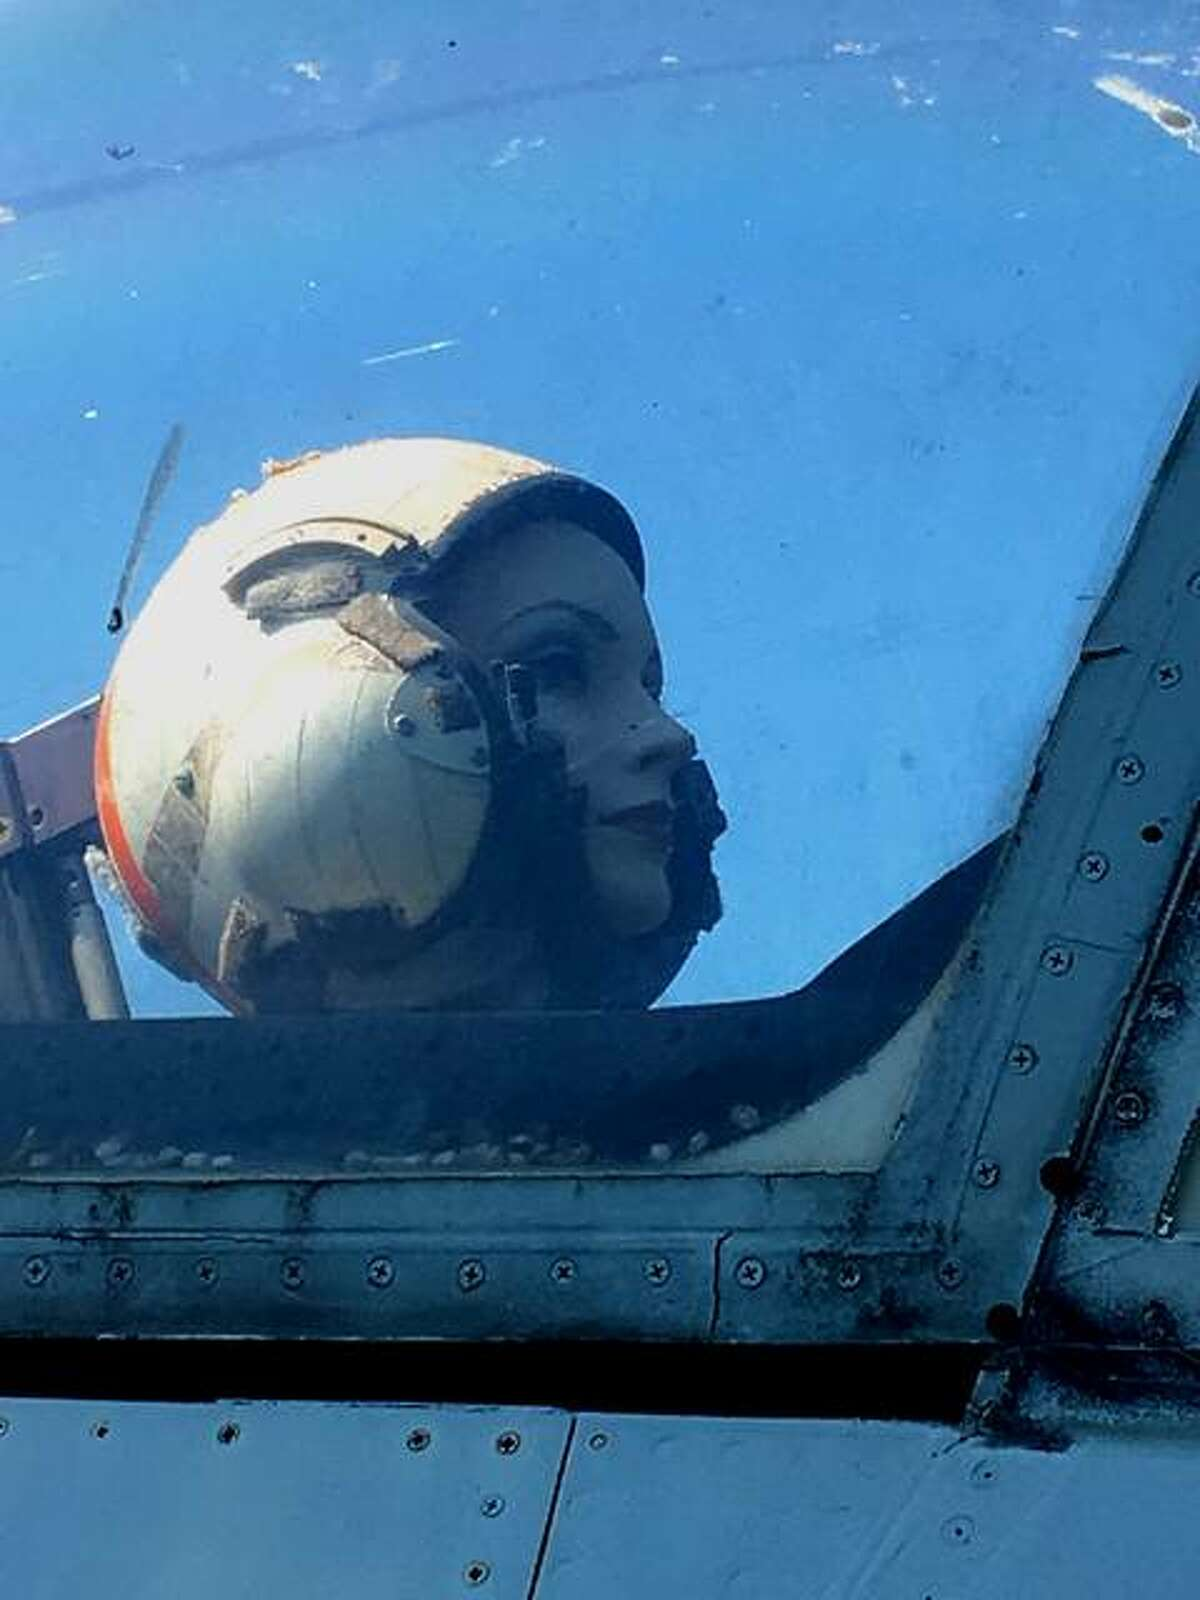 Mabel, as seen in the cockpit of the U.S. Navy A7E II Corsair on display at Robert C. Stille Edwardsville Township Community Park.